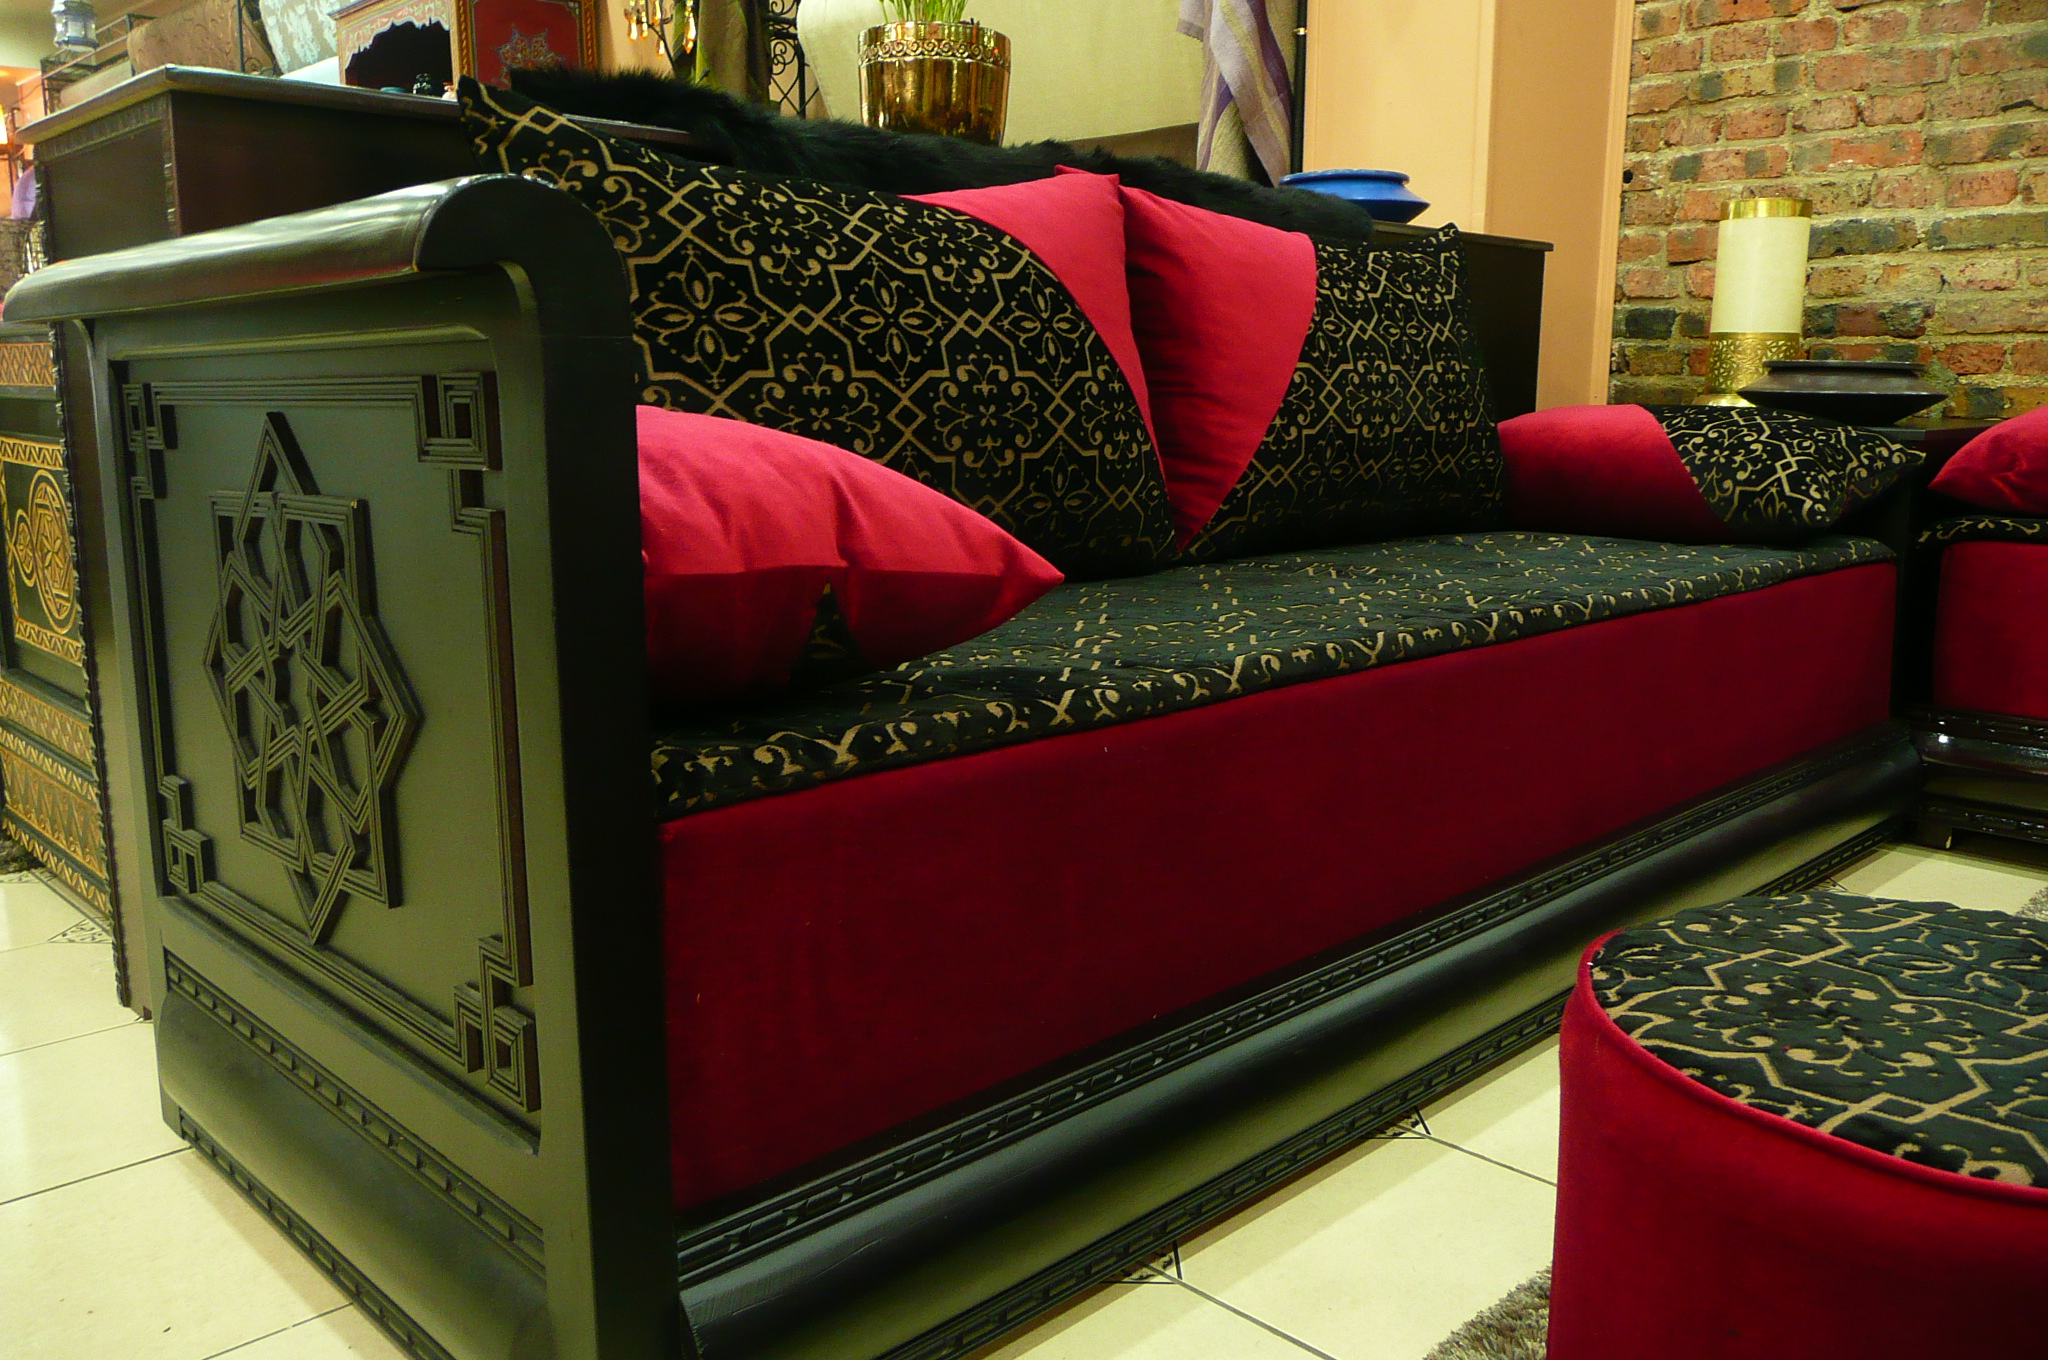 deco salon rouge et noir d coration salon rouge et beige with deco salon rouge et noir salon. Black Bedroom Furniture Sets. Home Design Ideas